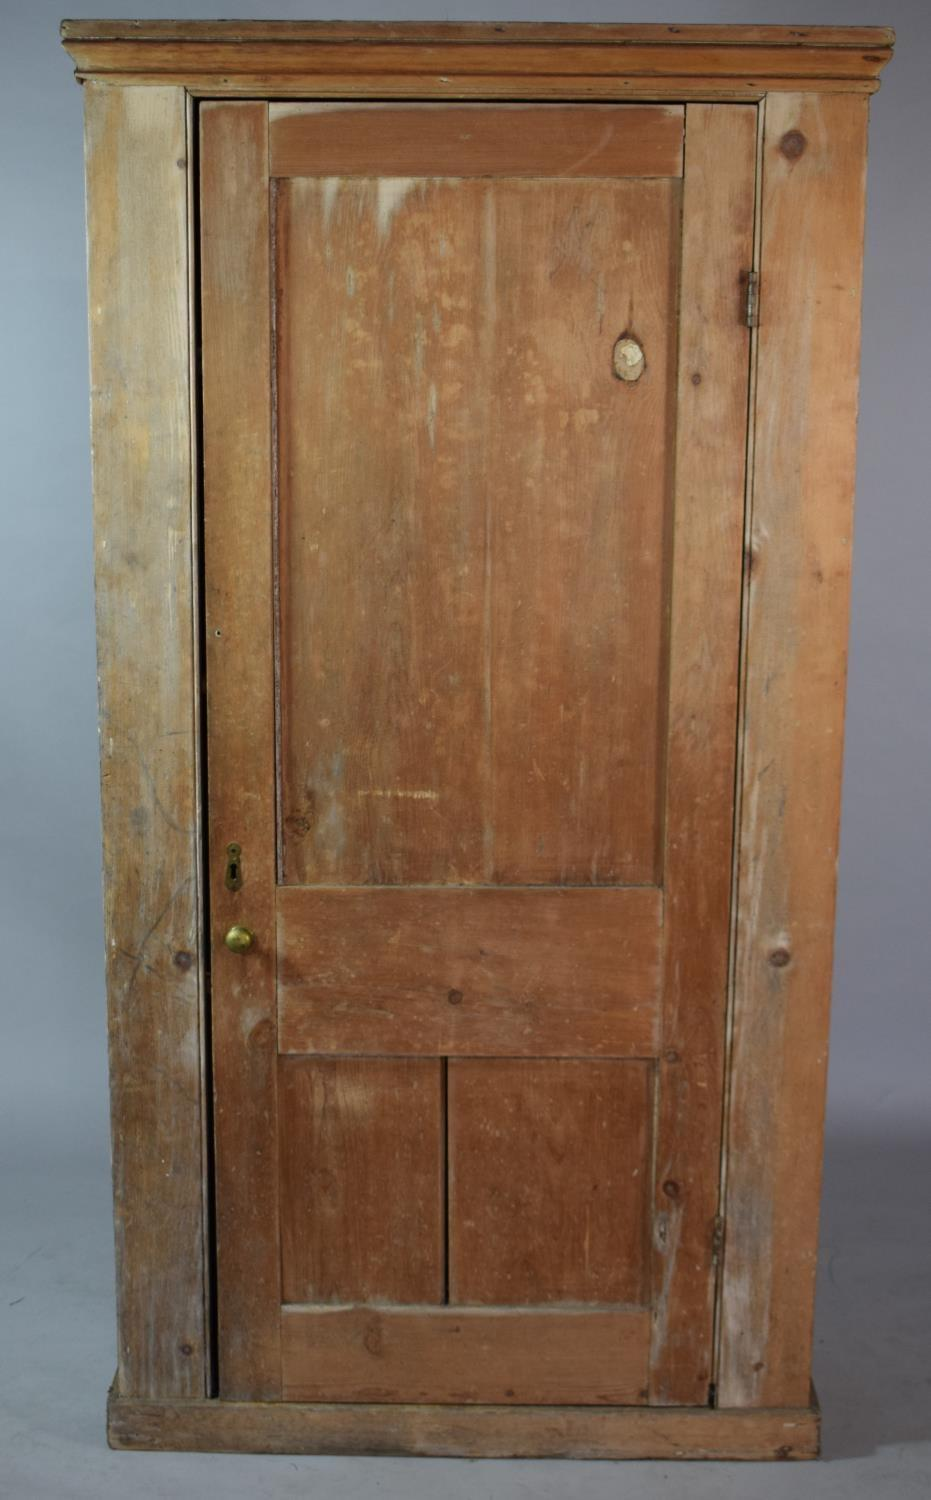 Lot 471 - A 19th Century Stripped Pine Shelved Cupboard. 97x34x183